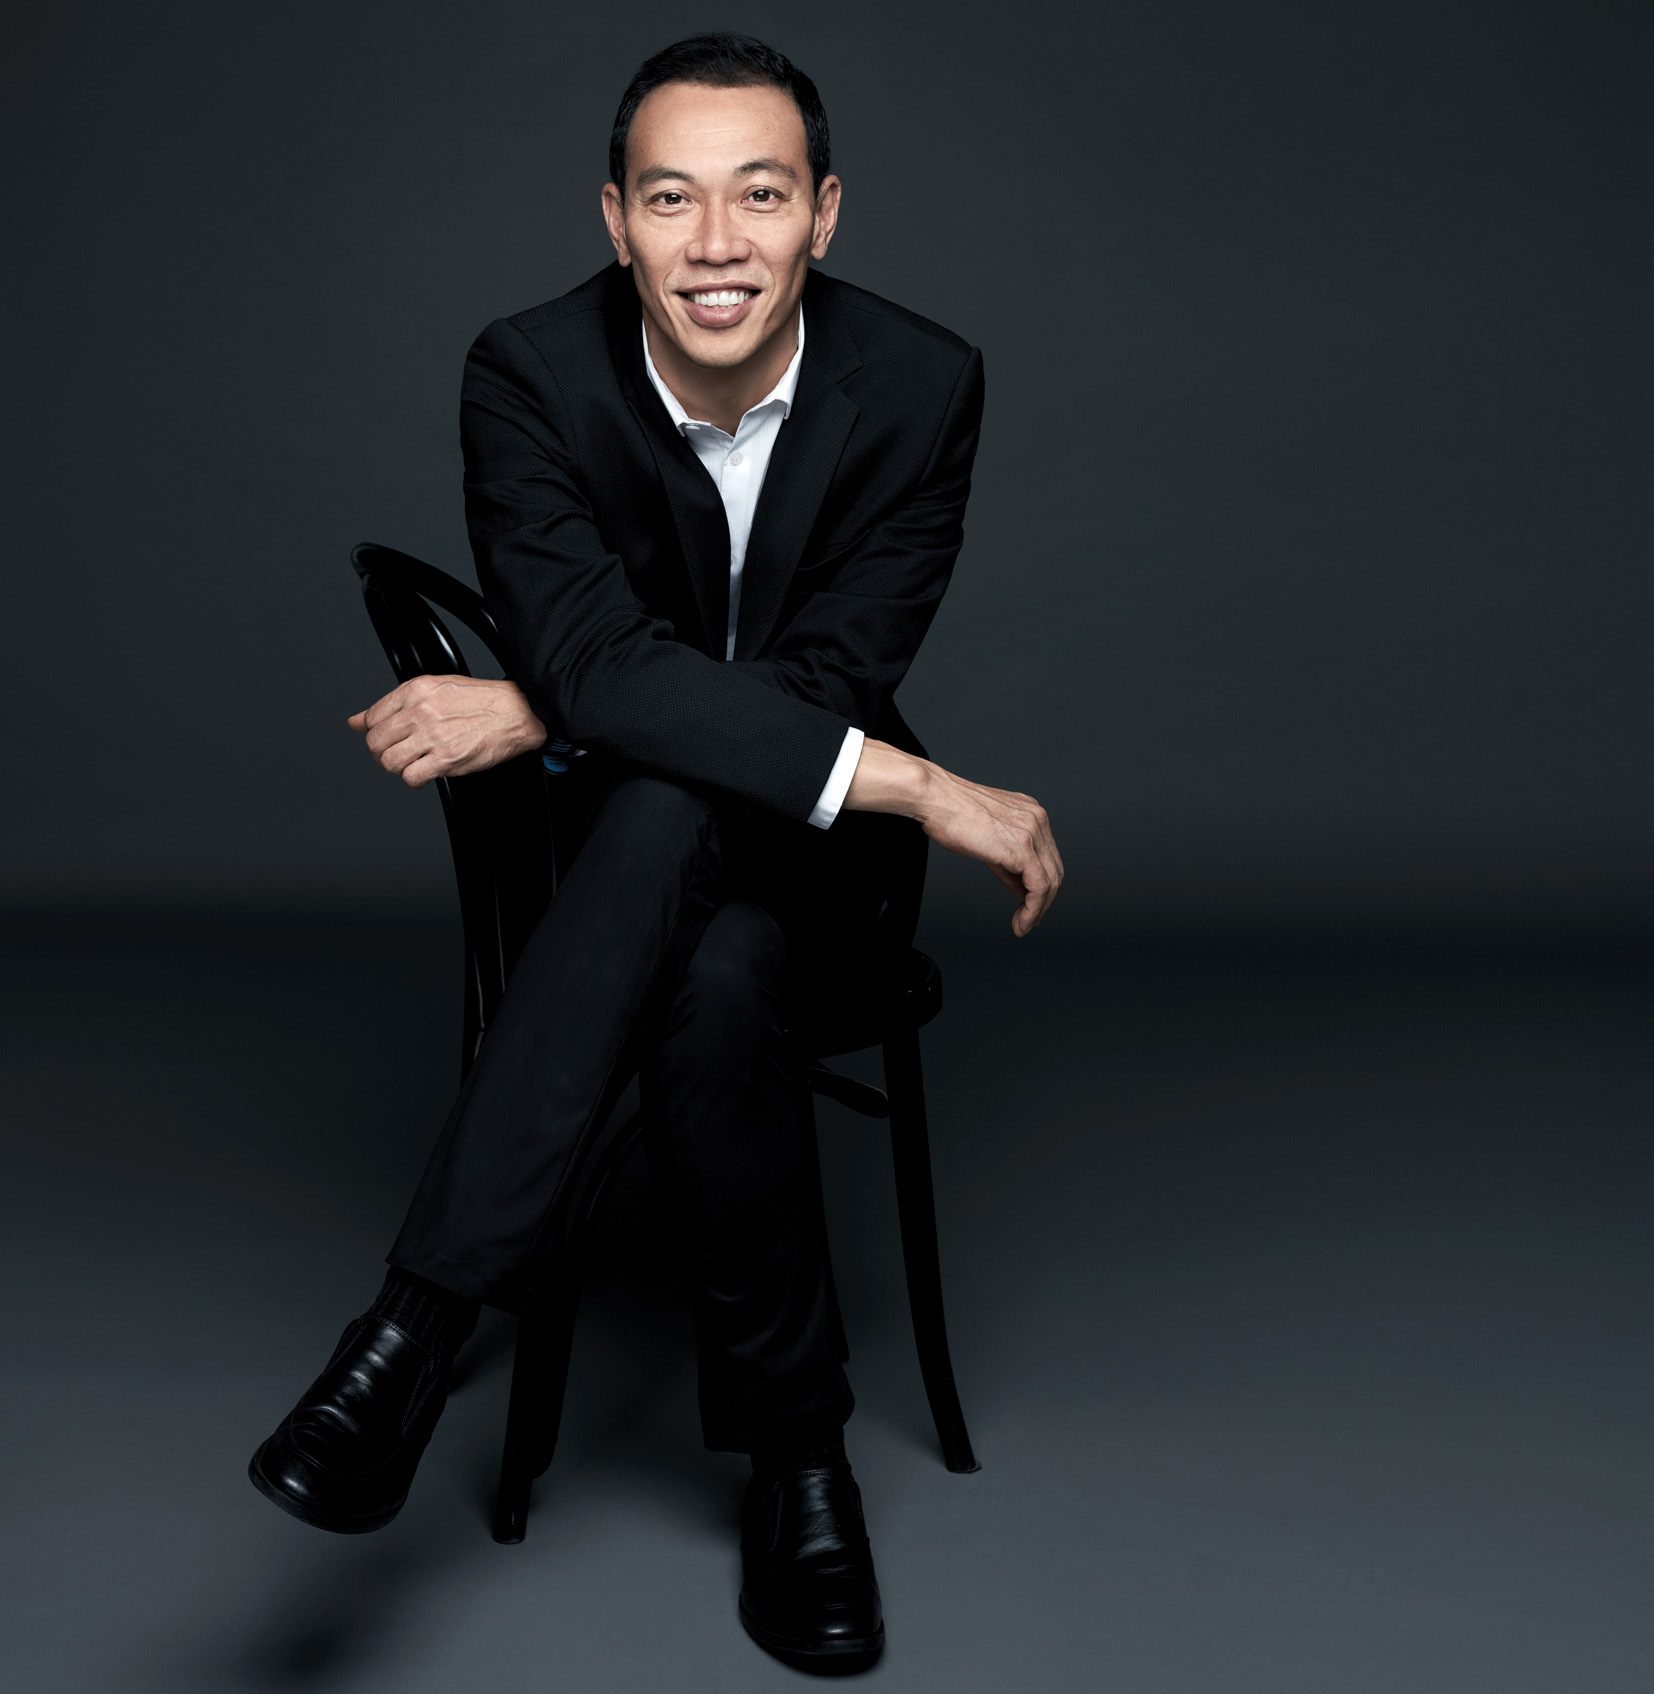 Ivan Ng takes on the #PrestigeQuestionnaire